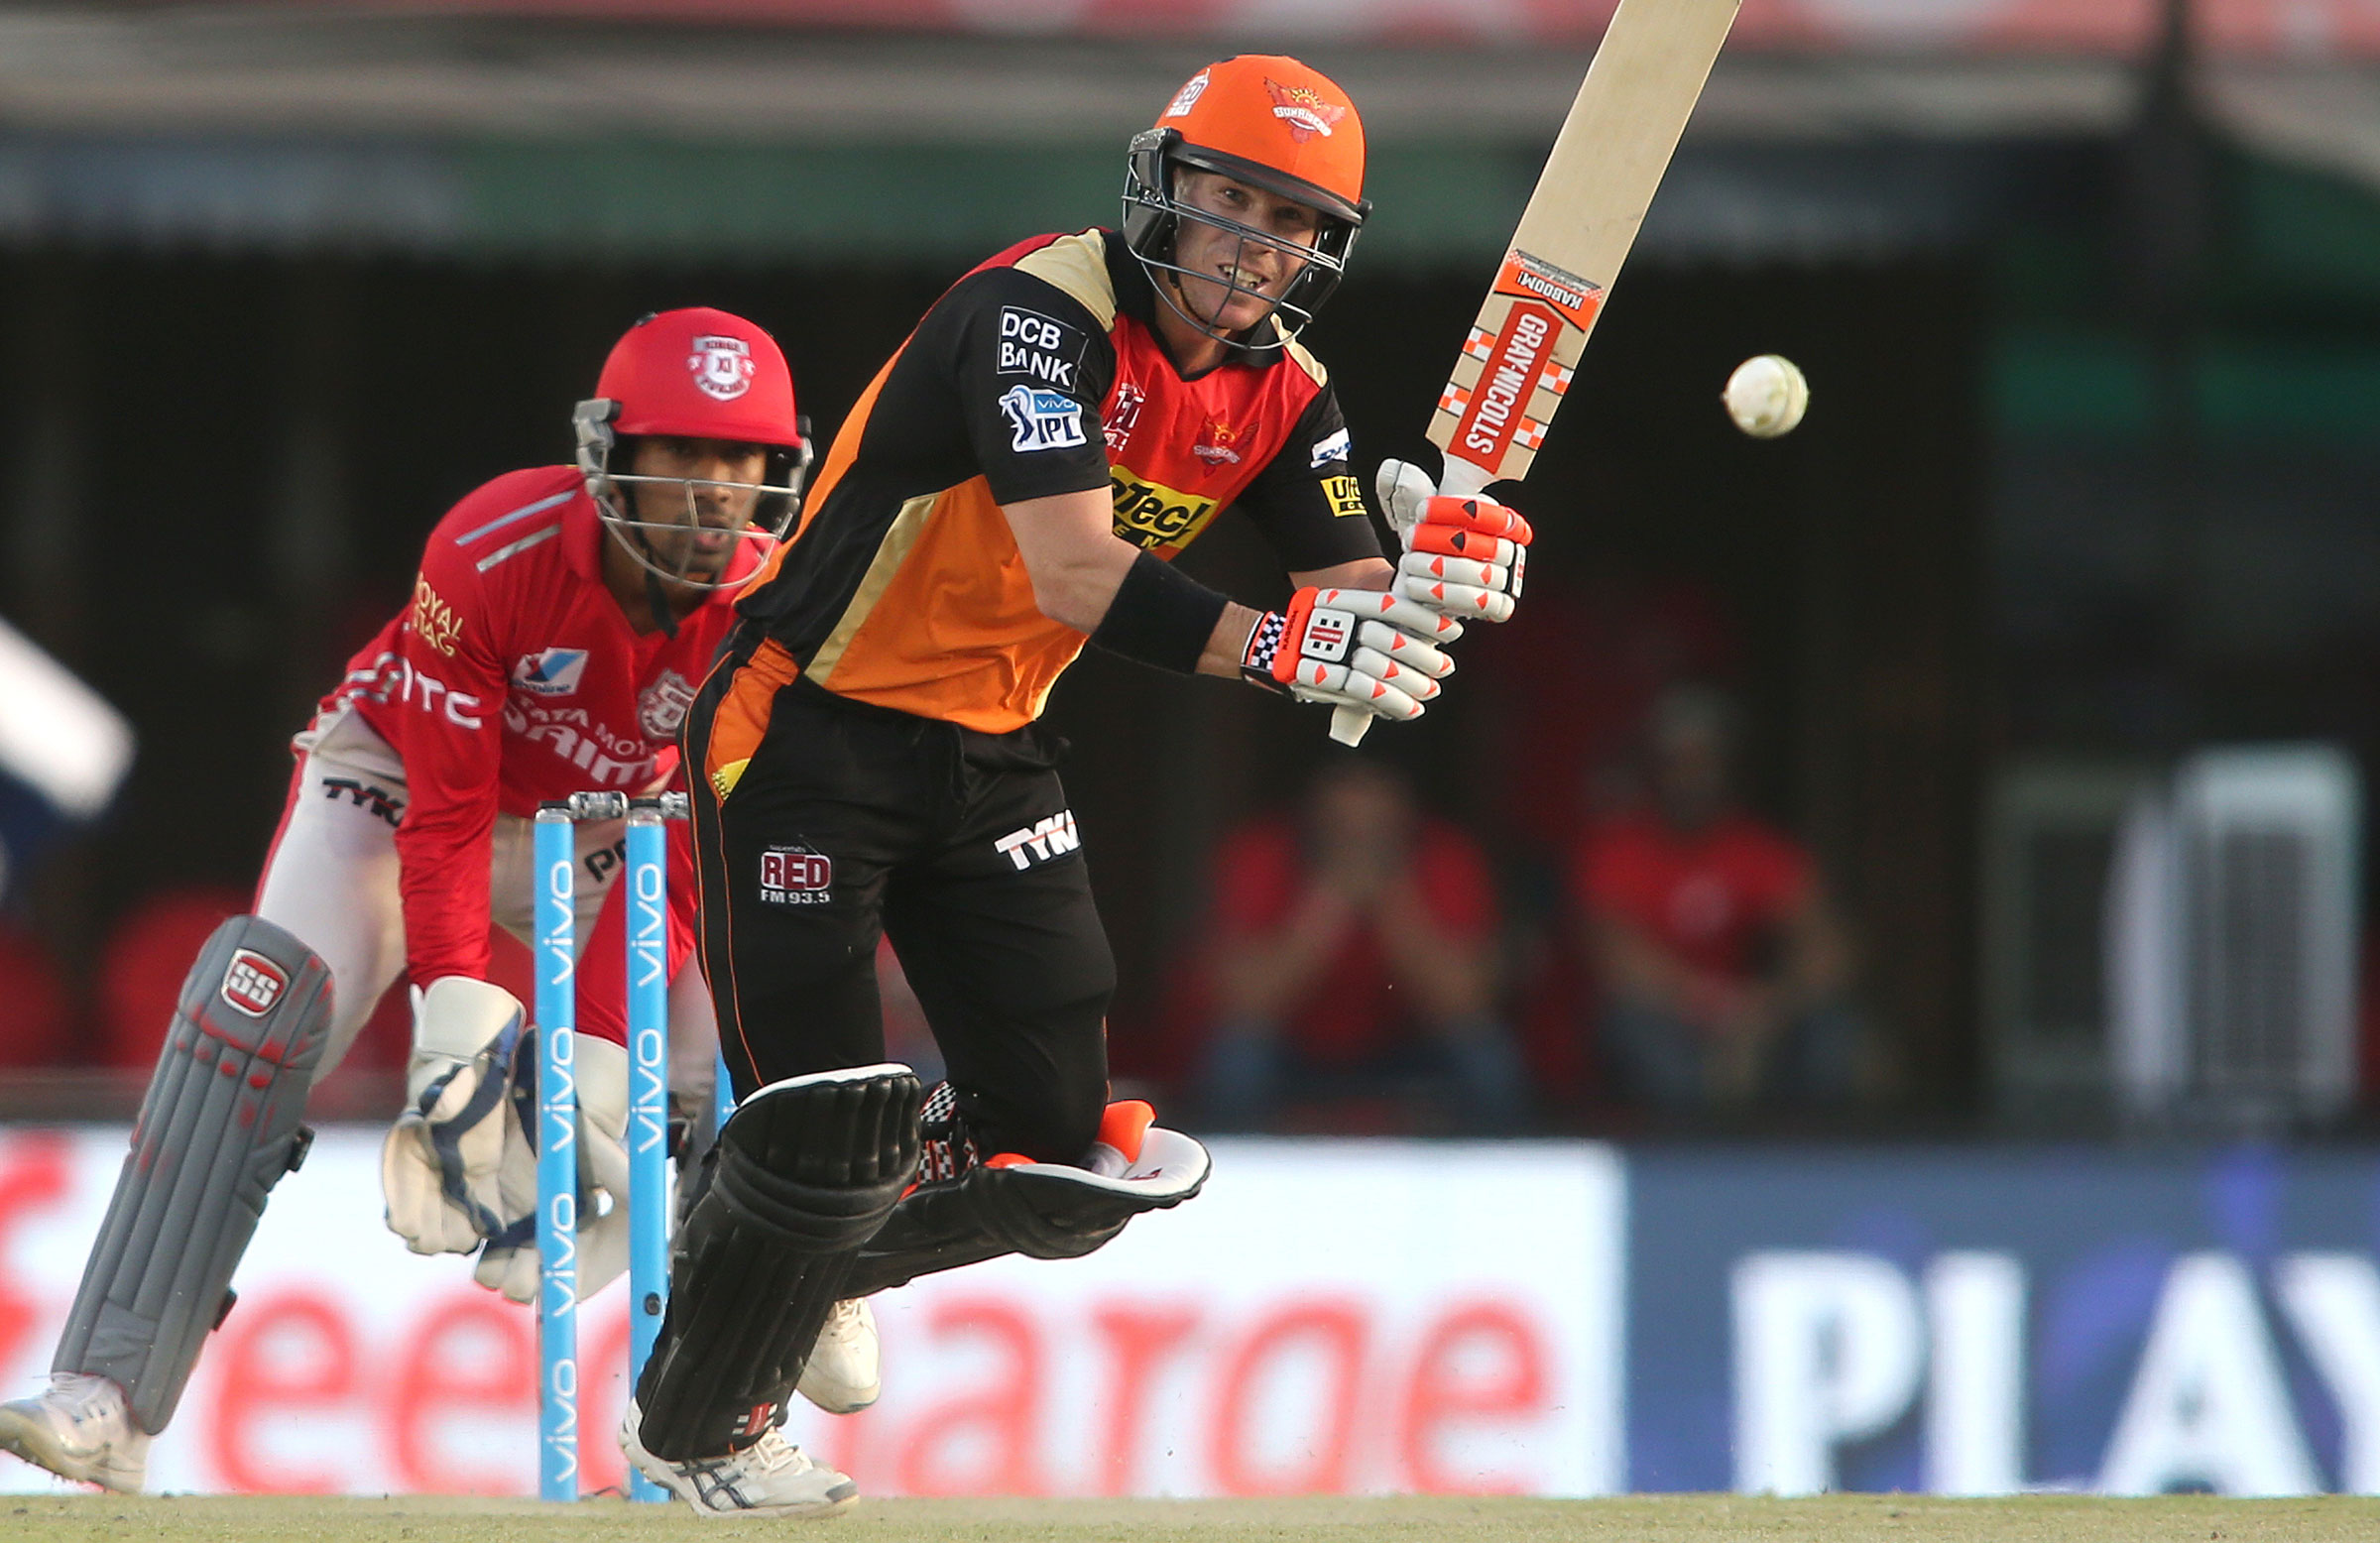 Chase pays off as Mumbai beats Sunrisers in IPL by 4 wickets